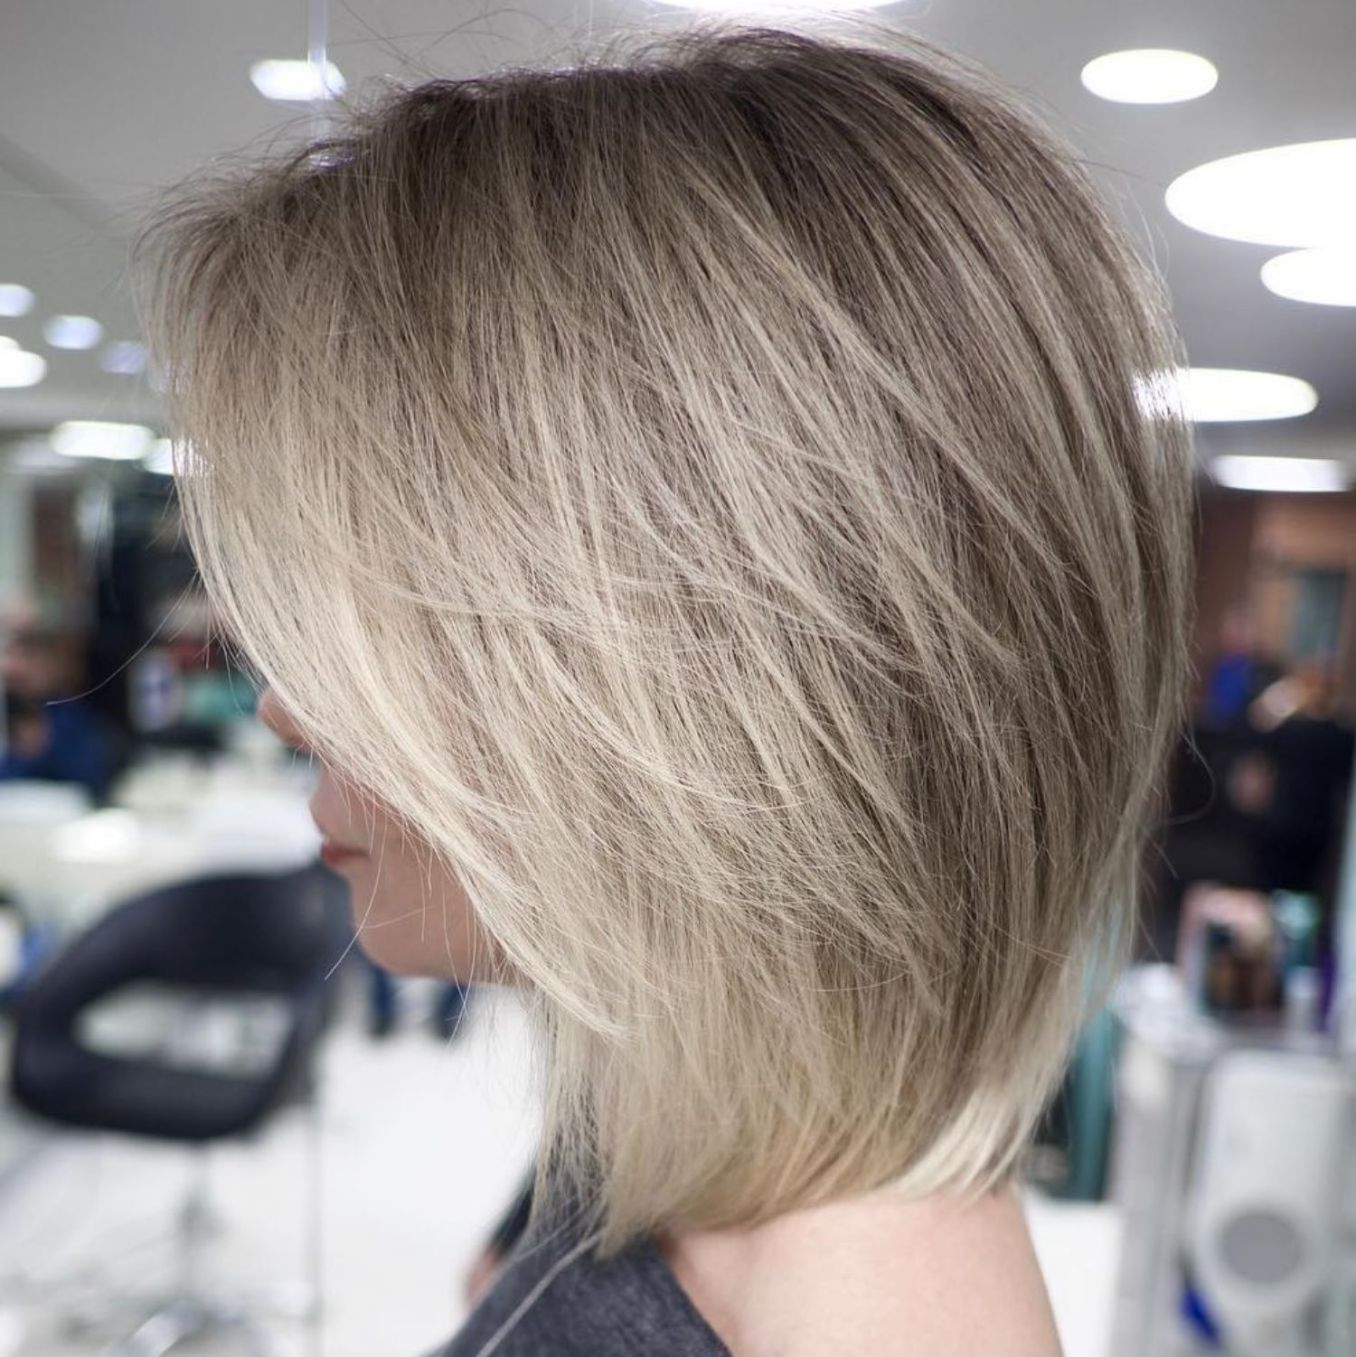 60 Layered Bob Styles Modern Haircuts With Layers For Any Occasion Long Bob Hairstyles Layered Bob Hairstyles Thick Hair Styles